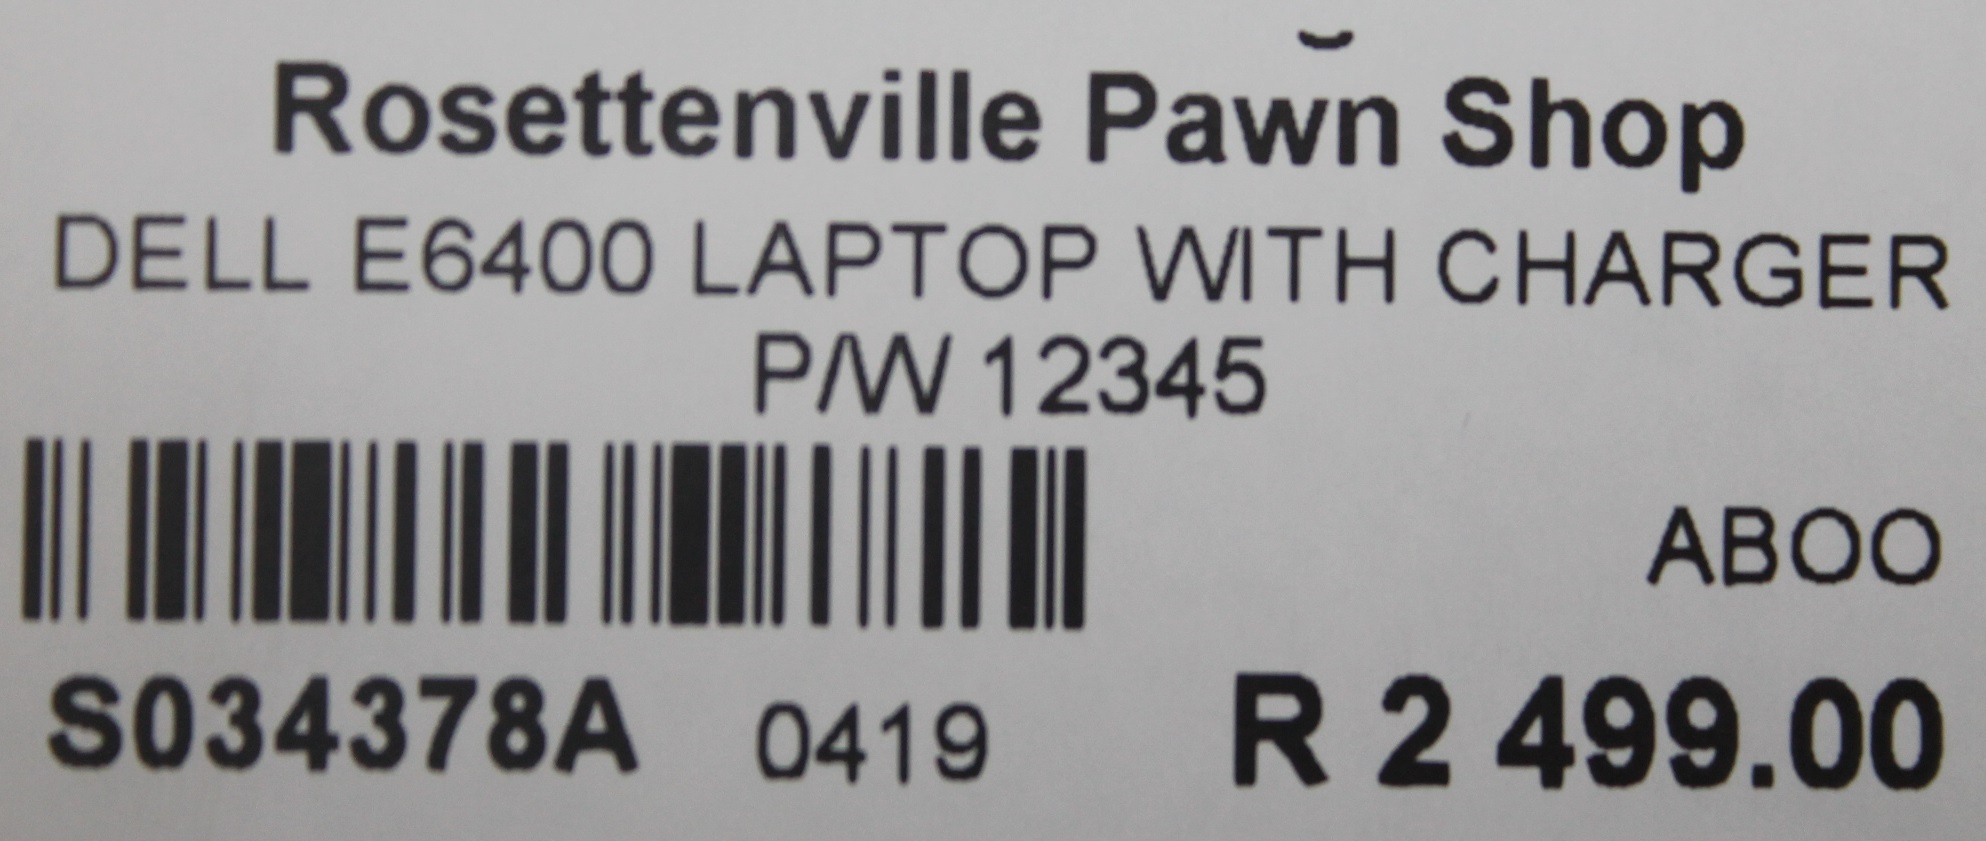 S034378A Dell E6400 laptop with charger #Rosettenvillepawnshop